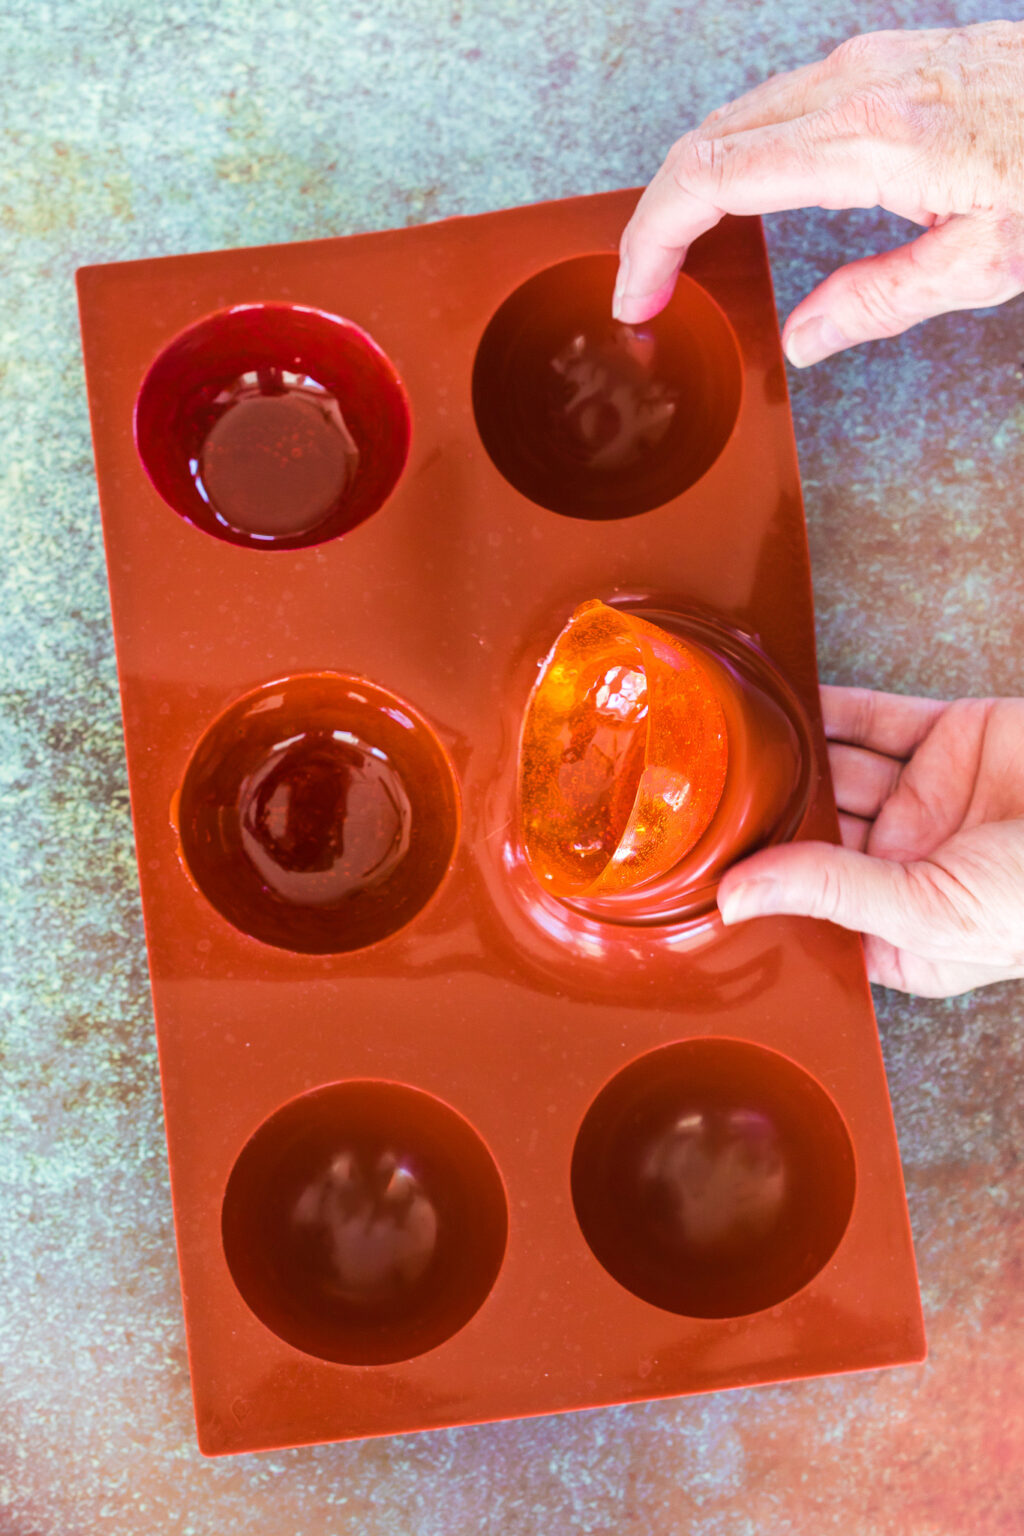 hand removing tea bomb from mold